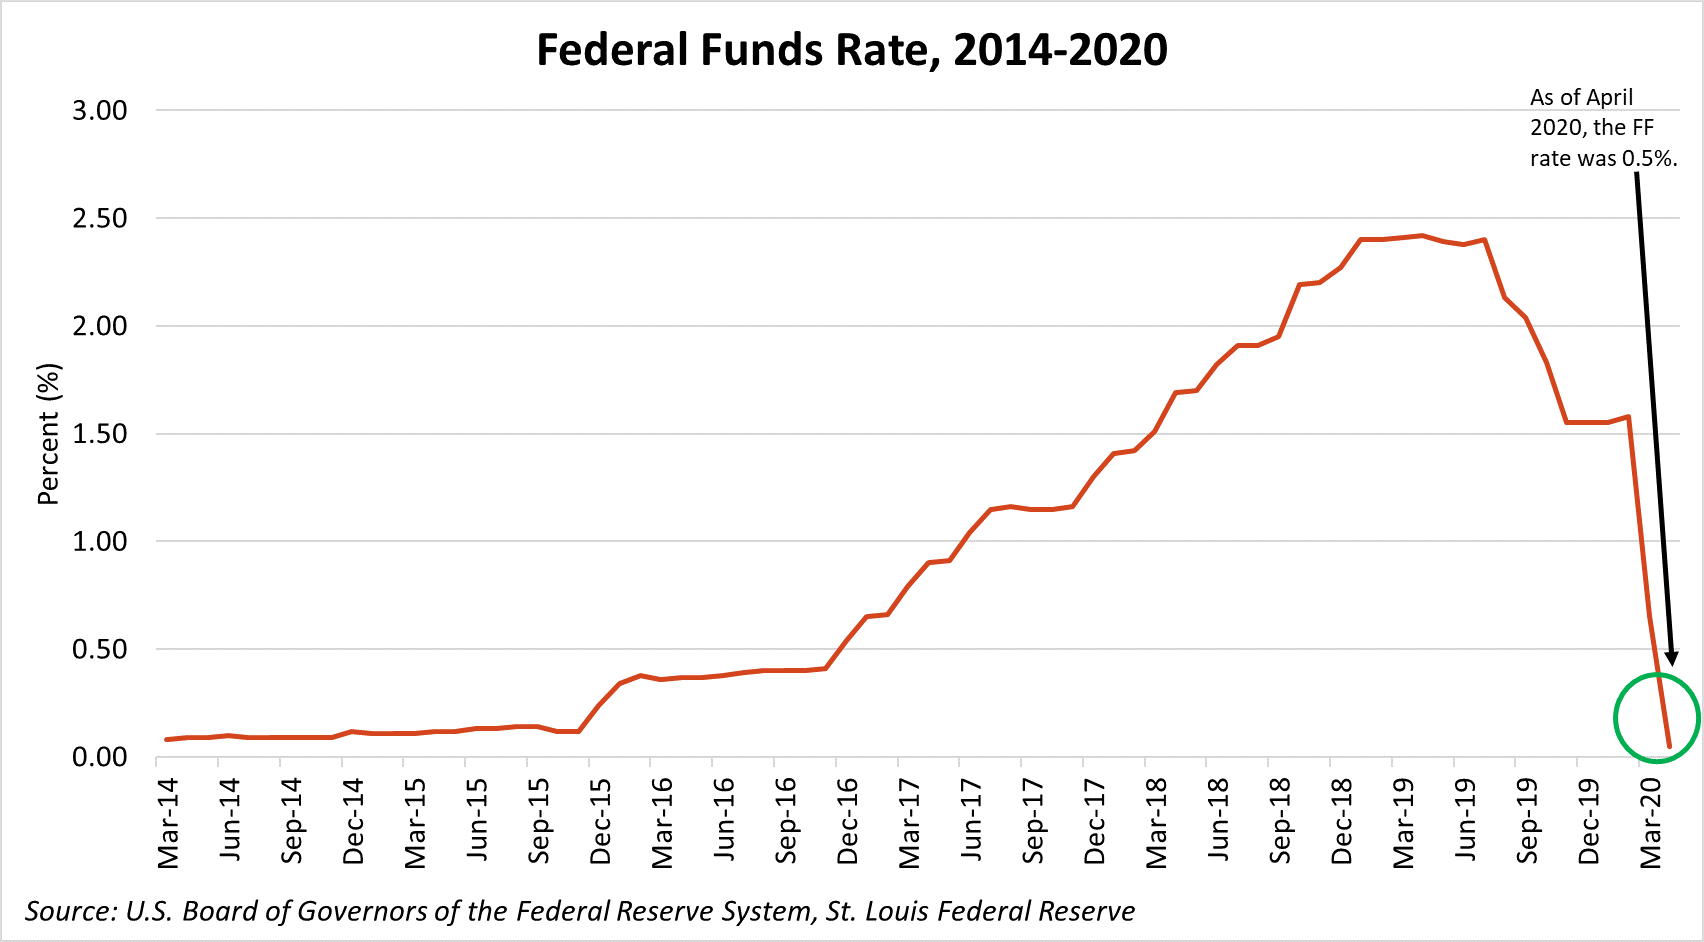 Federal Funds Rate, 2014-2020